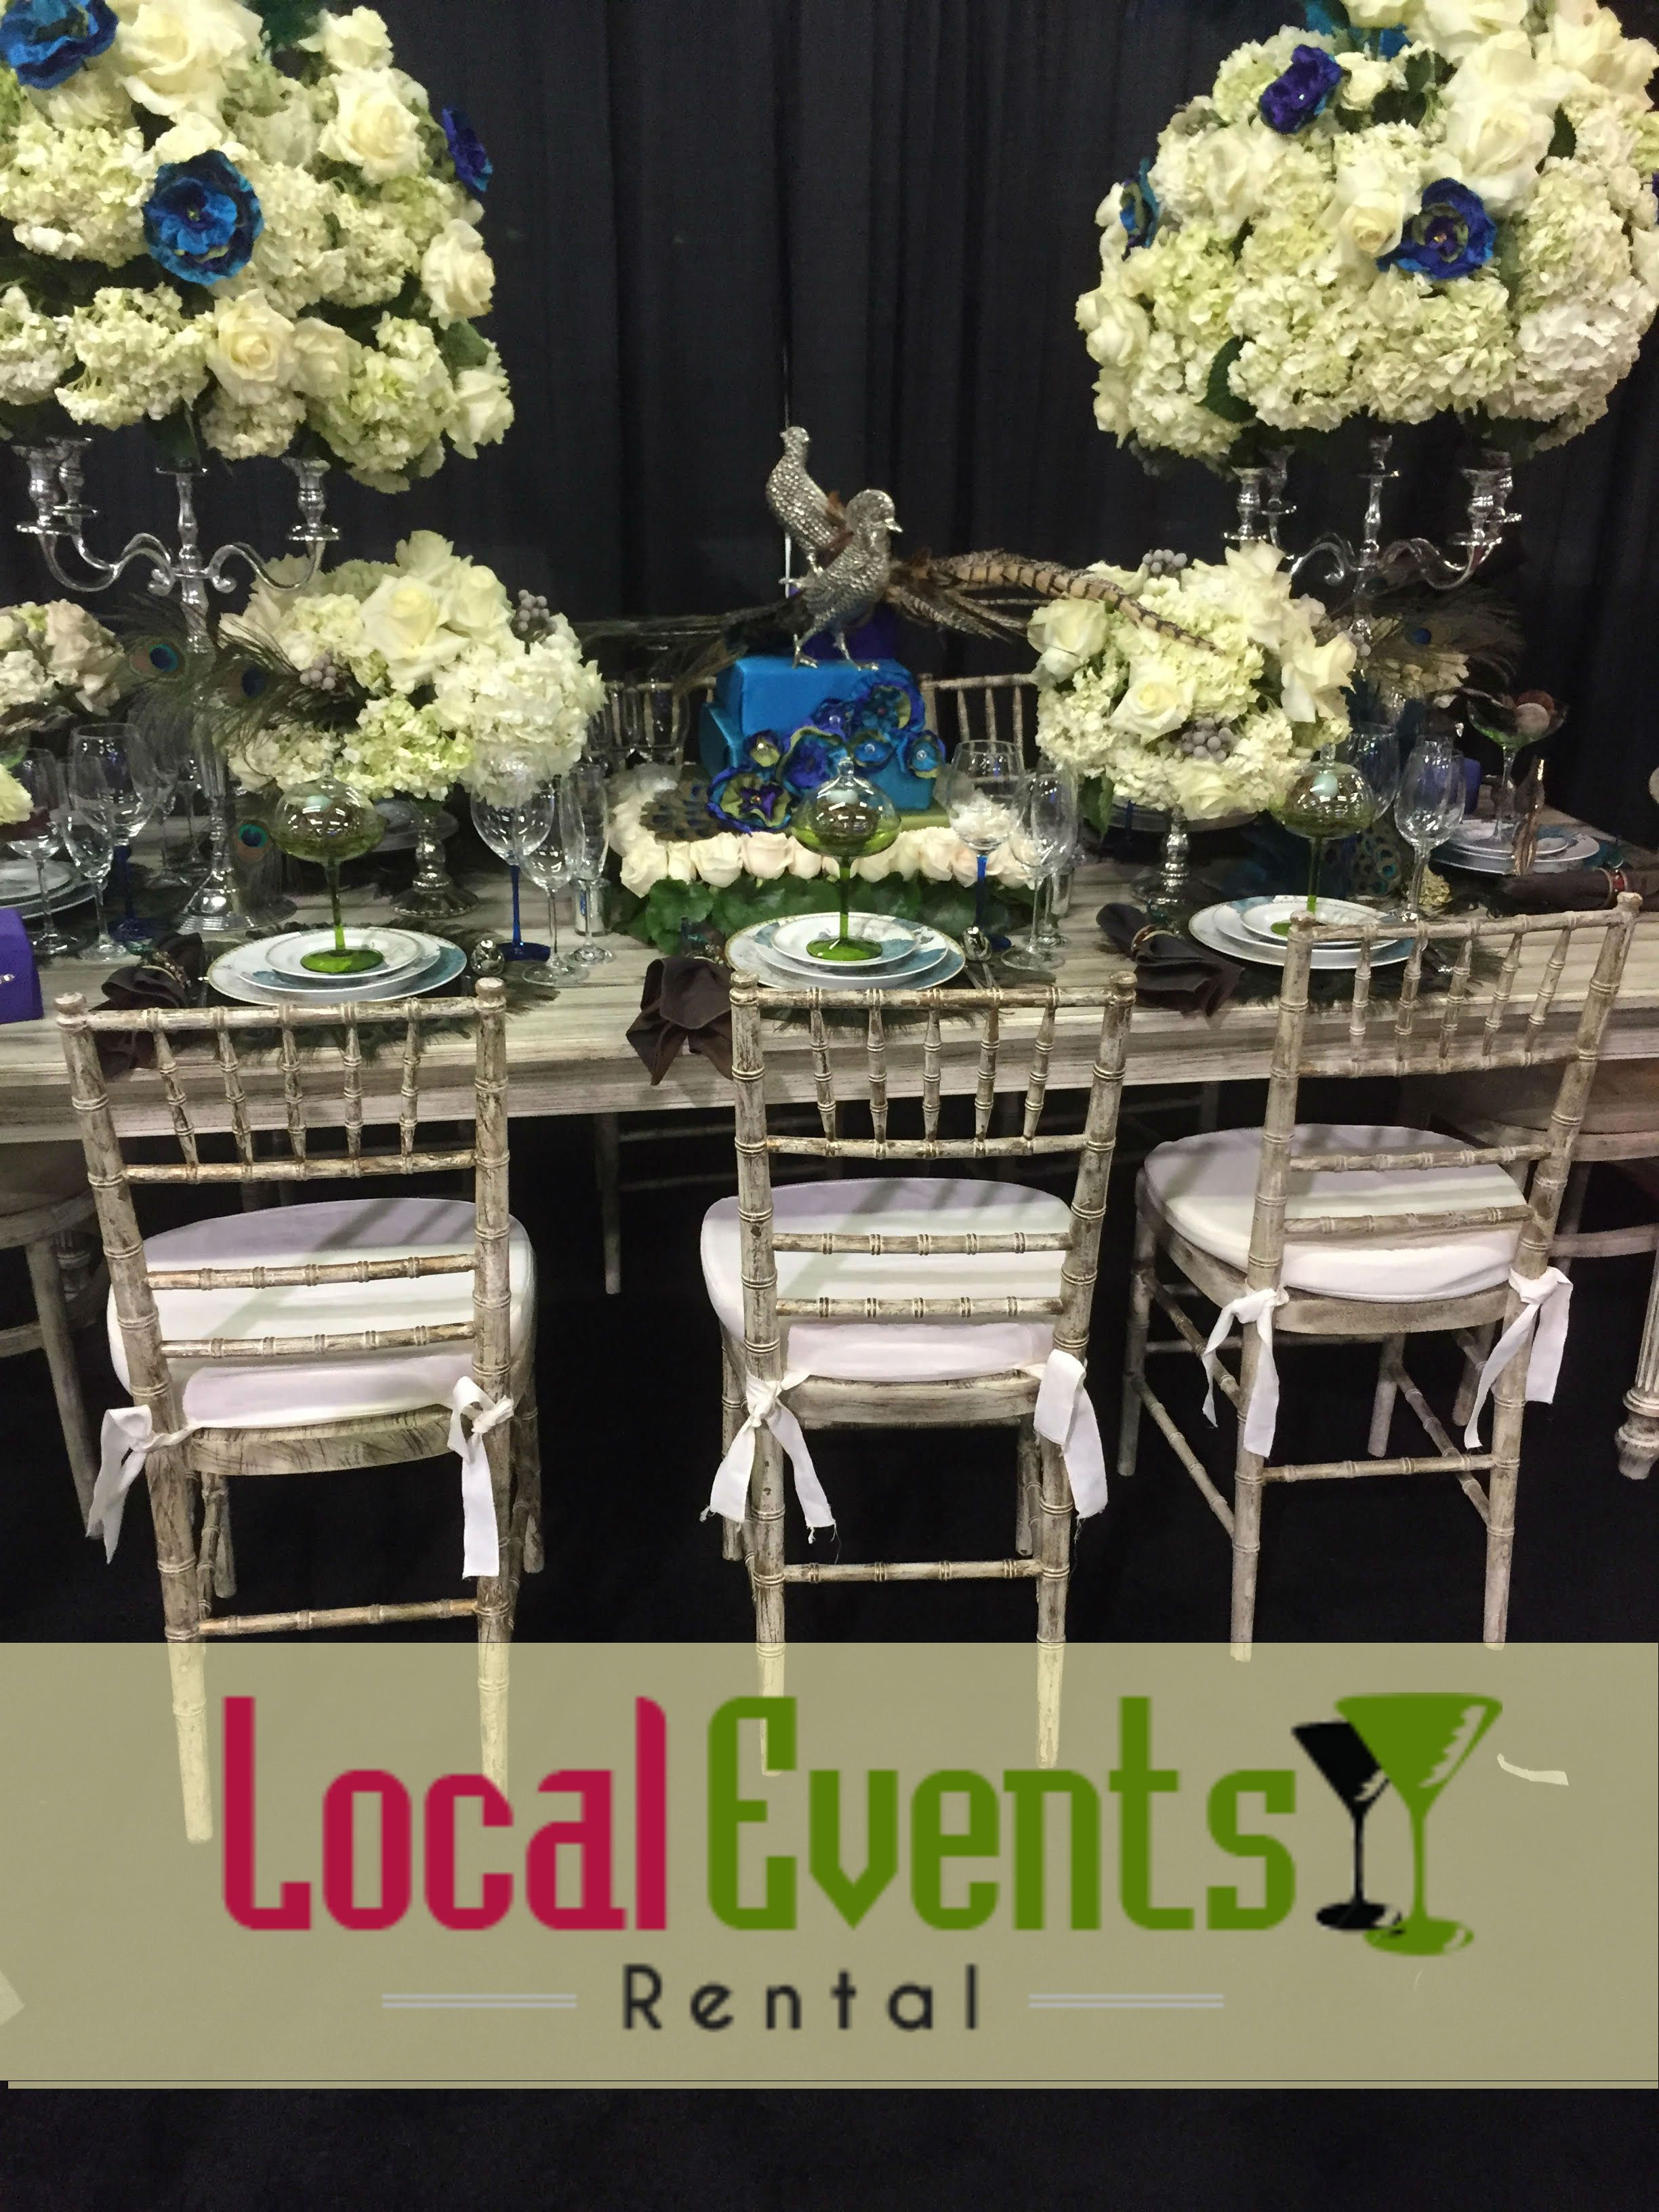 Local Events Rental Of Small To Large Wedding Rentals Party Tents Portable Dance